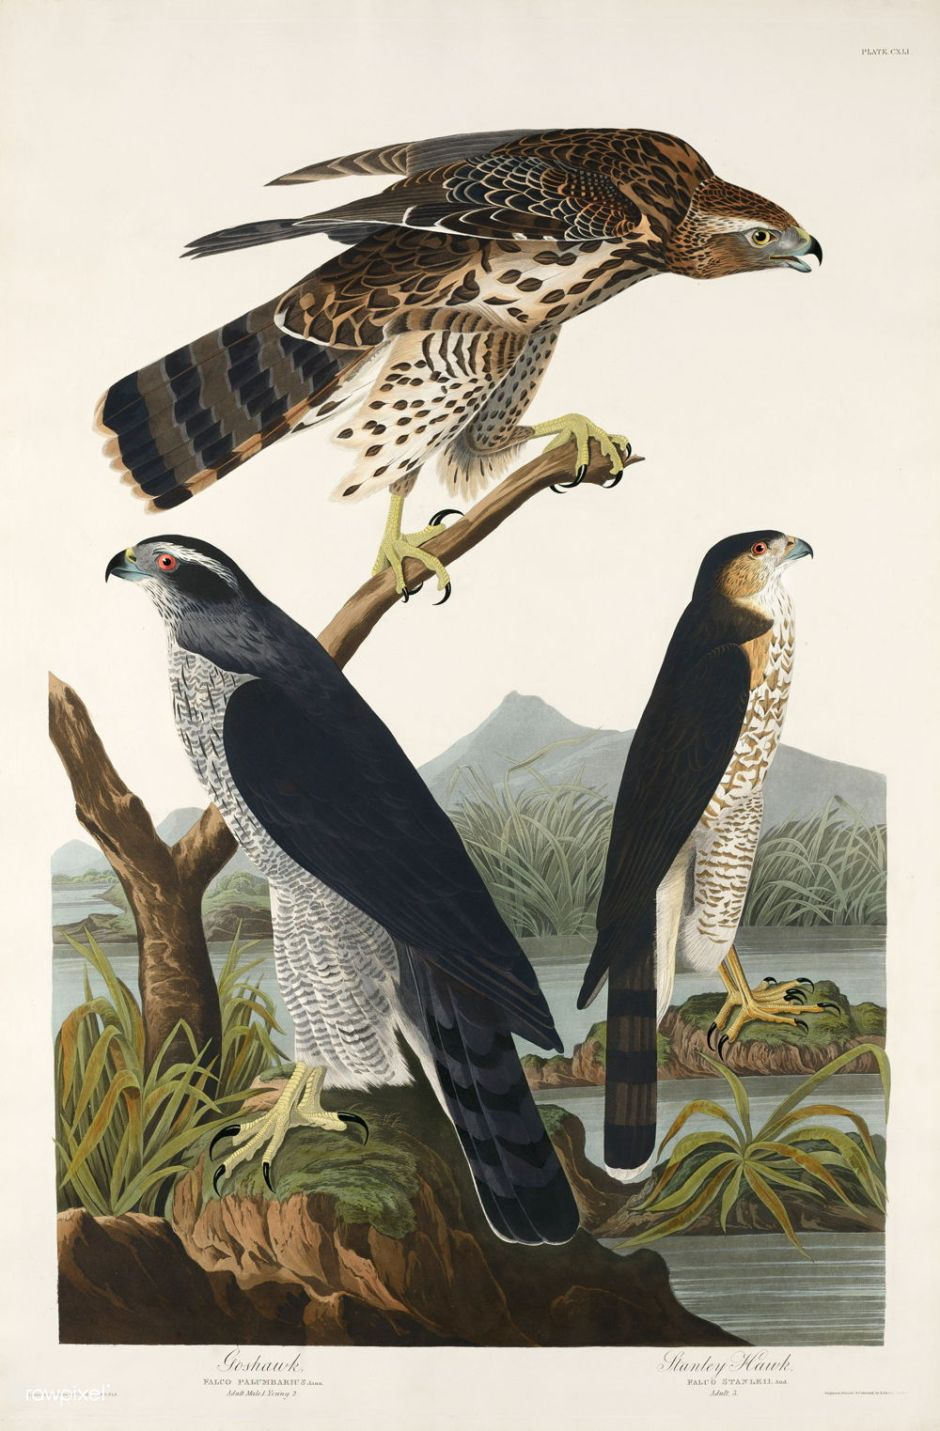 Goshawk and Stanley Hawk from Birds of America (1827) by John James Audubon (1785 - 1851), etched by Robert Havell (1793 - 1878). The original Birds of America is the most expensive printed book in the world and a truly awe-inspiring classic.